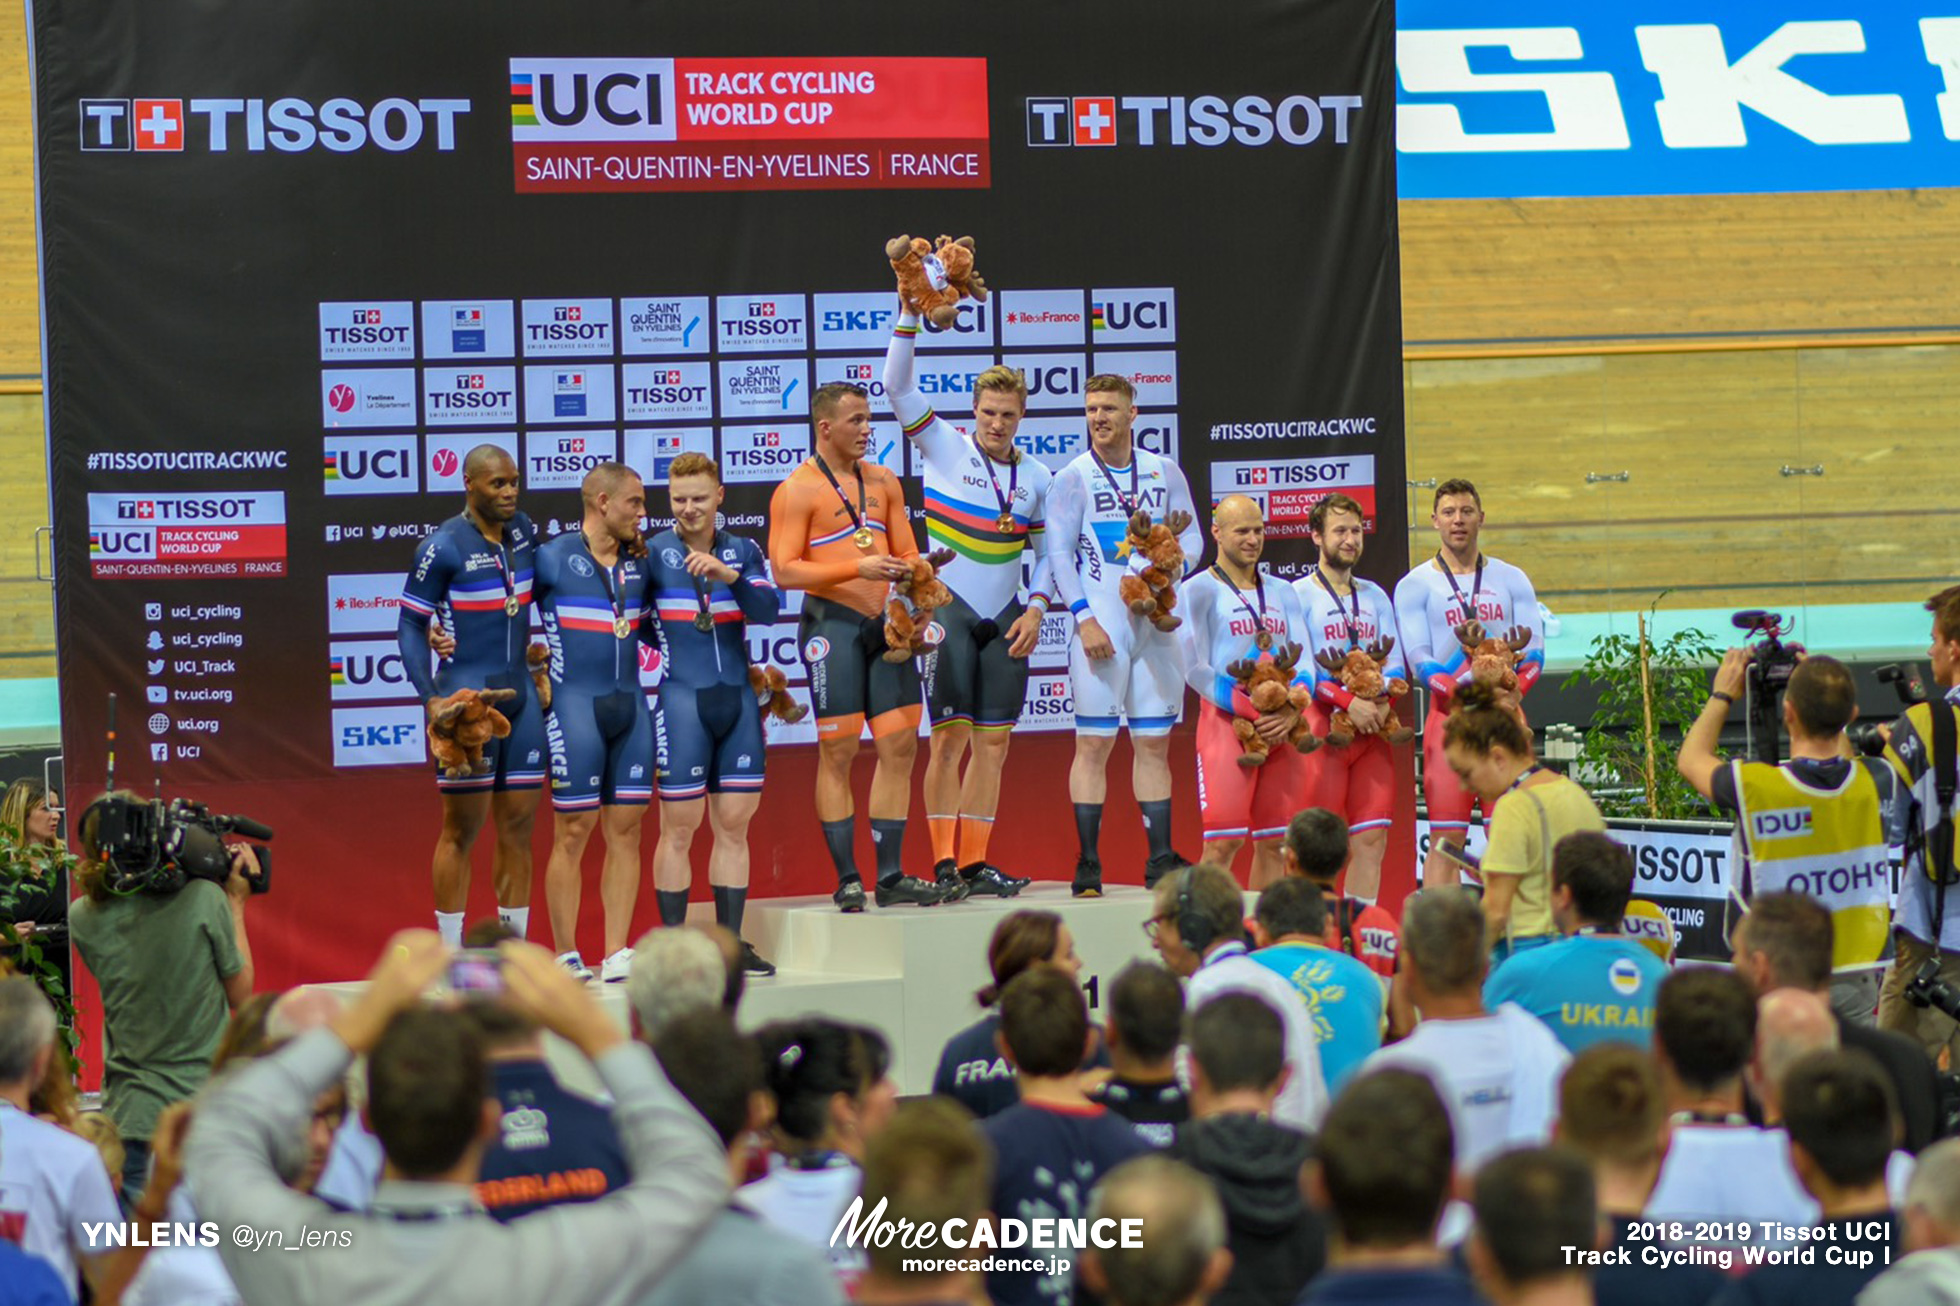 2018-2019 TRACK CYCLING WORLD CUP I Men's Team Sprint